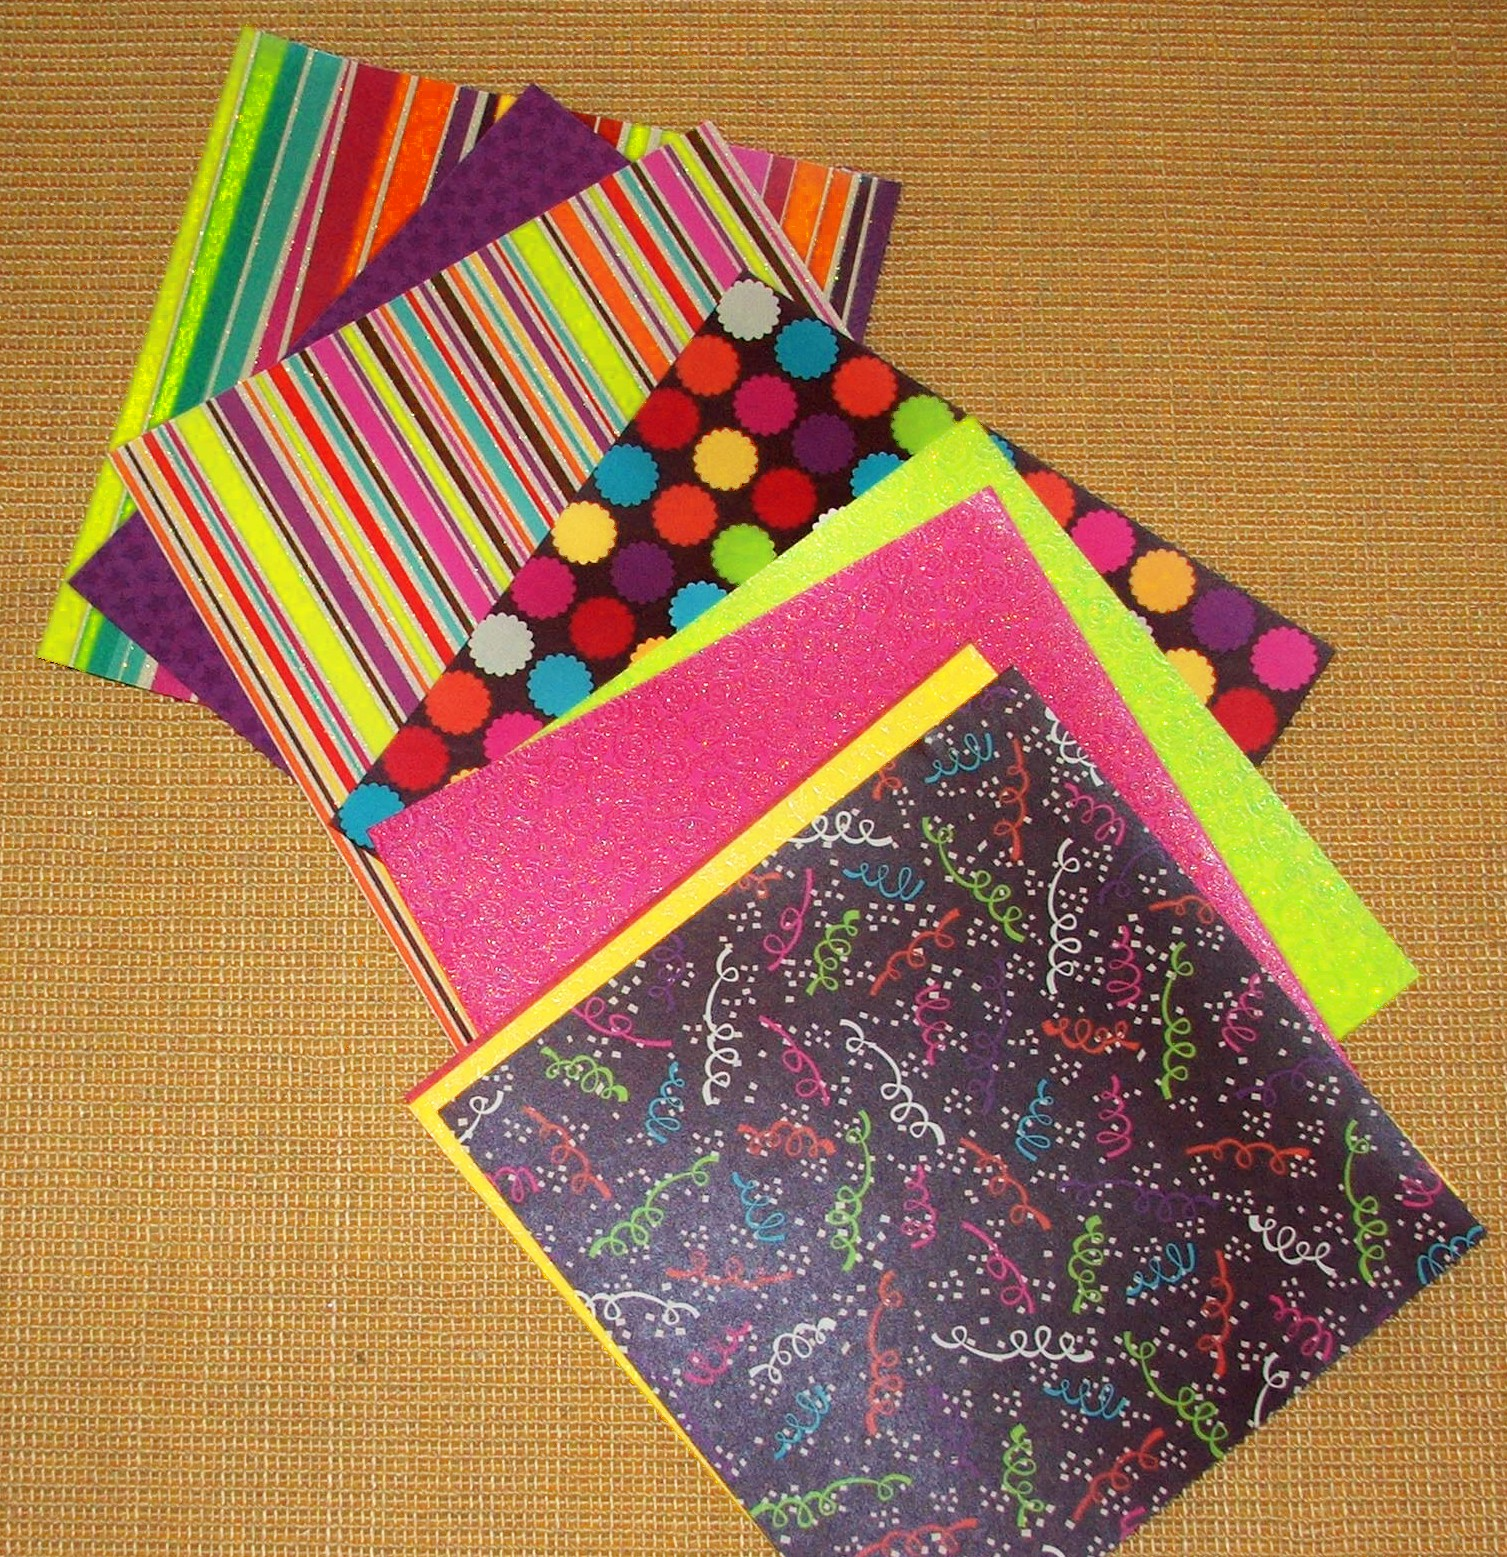 How to make scrapbook paper designs - Then Lay The Sheets Of Scrapbooking Paper Out On The Floor Move The Sheets Around Until You Find A Design That You Like Best